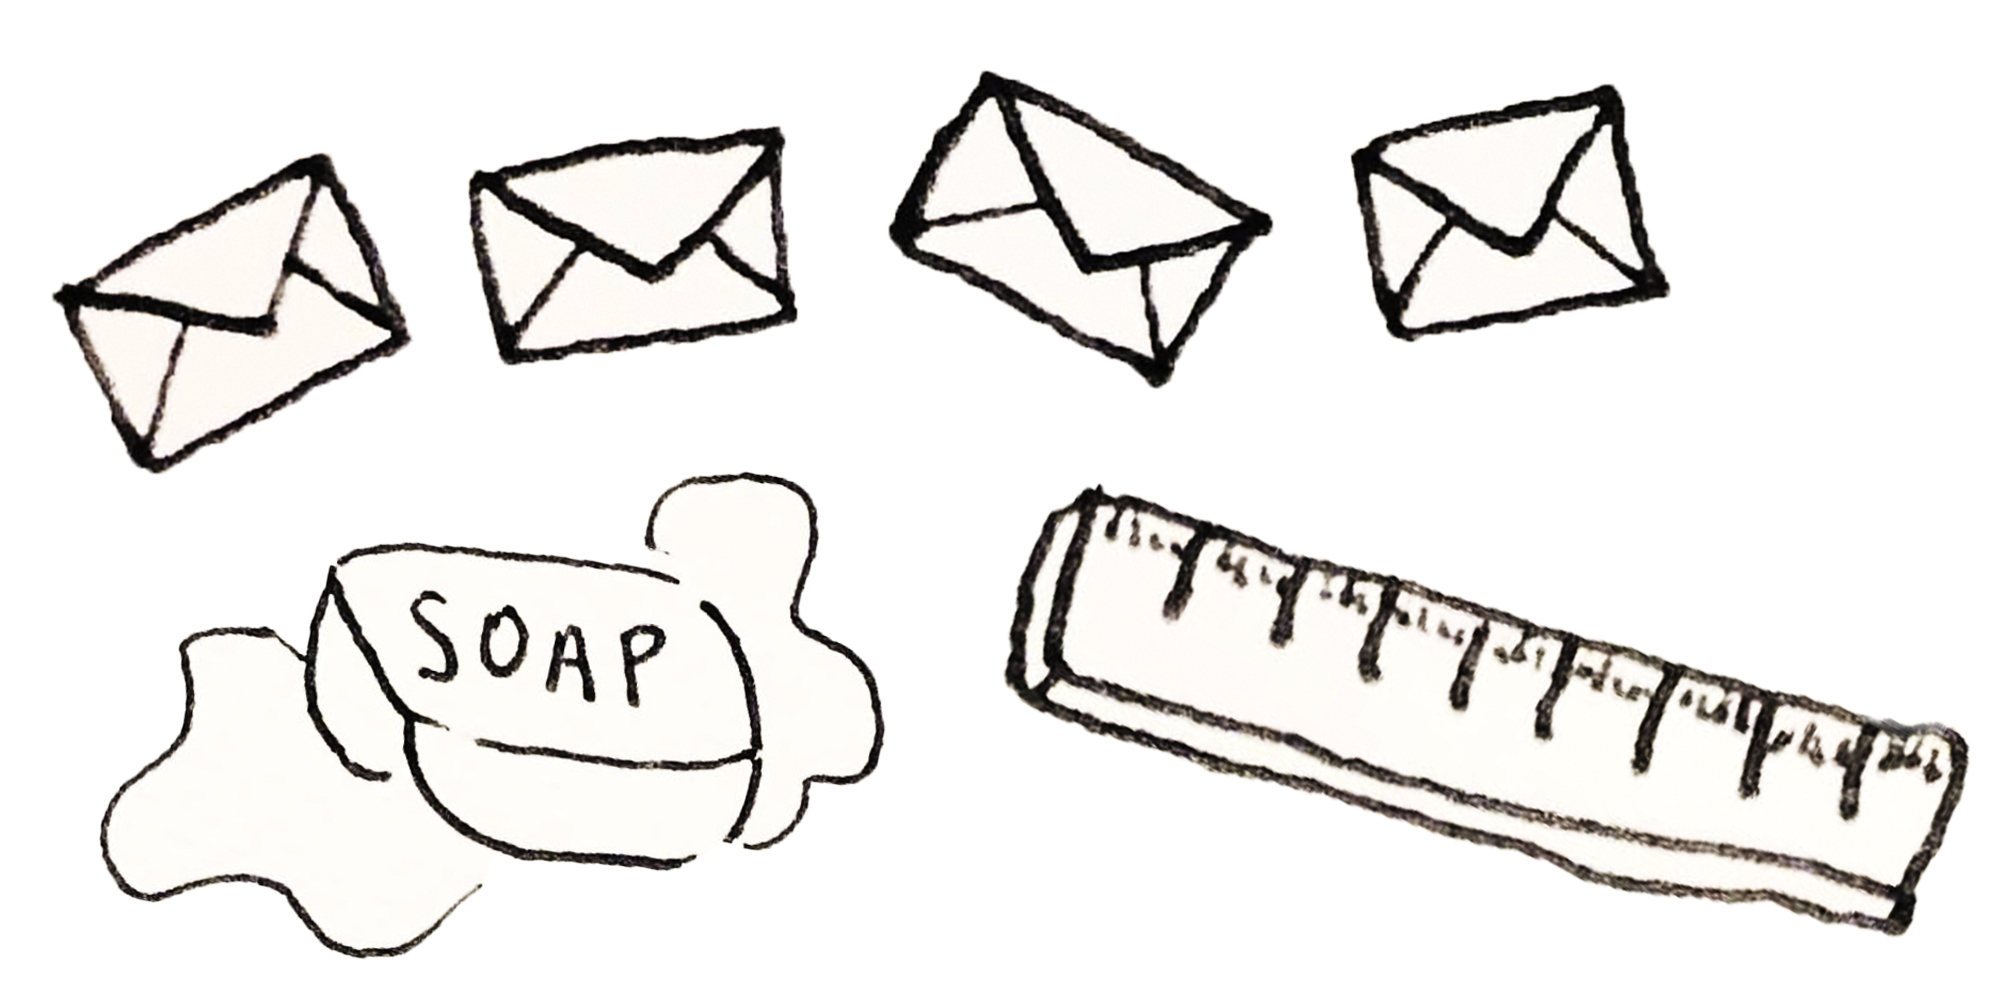 Sketches of 4 envelopes, a bar of soap, and a ruler